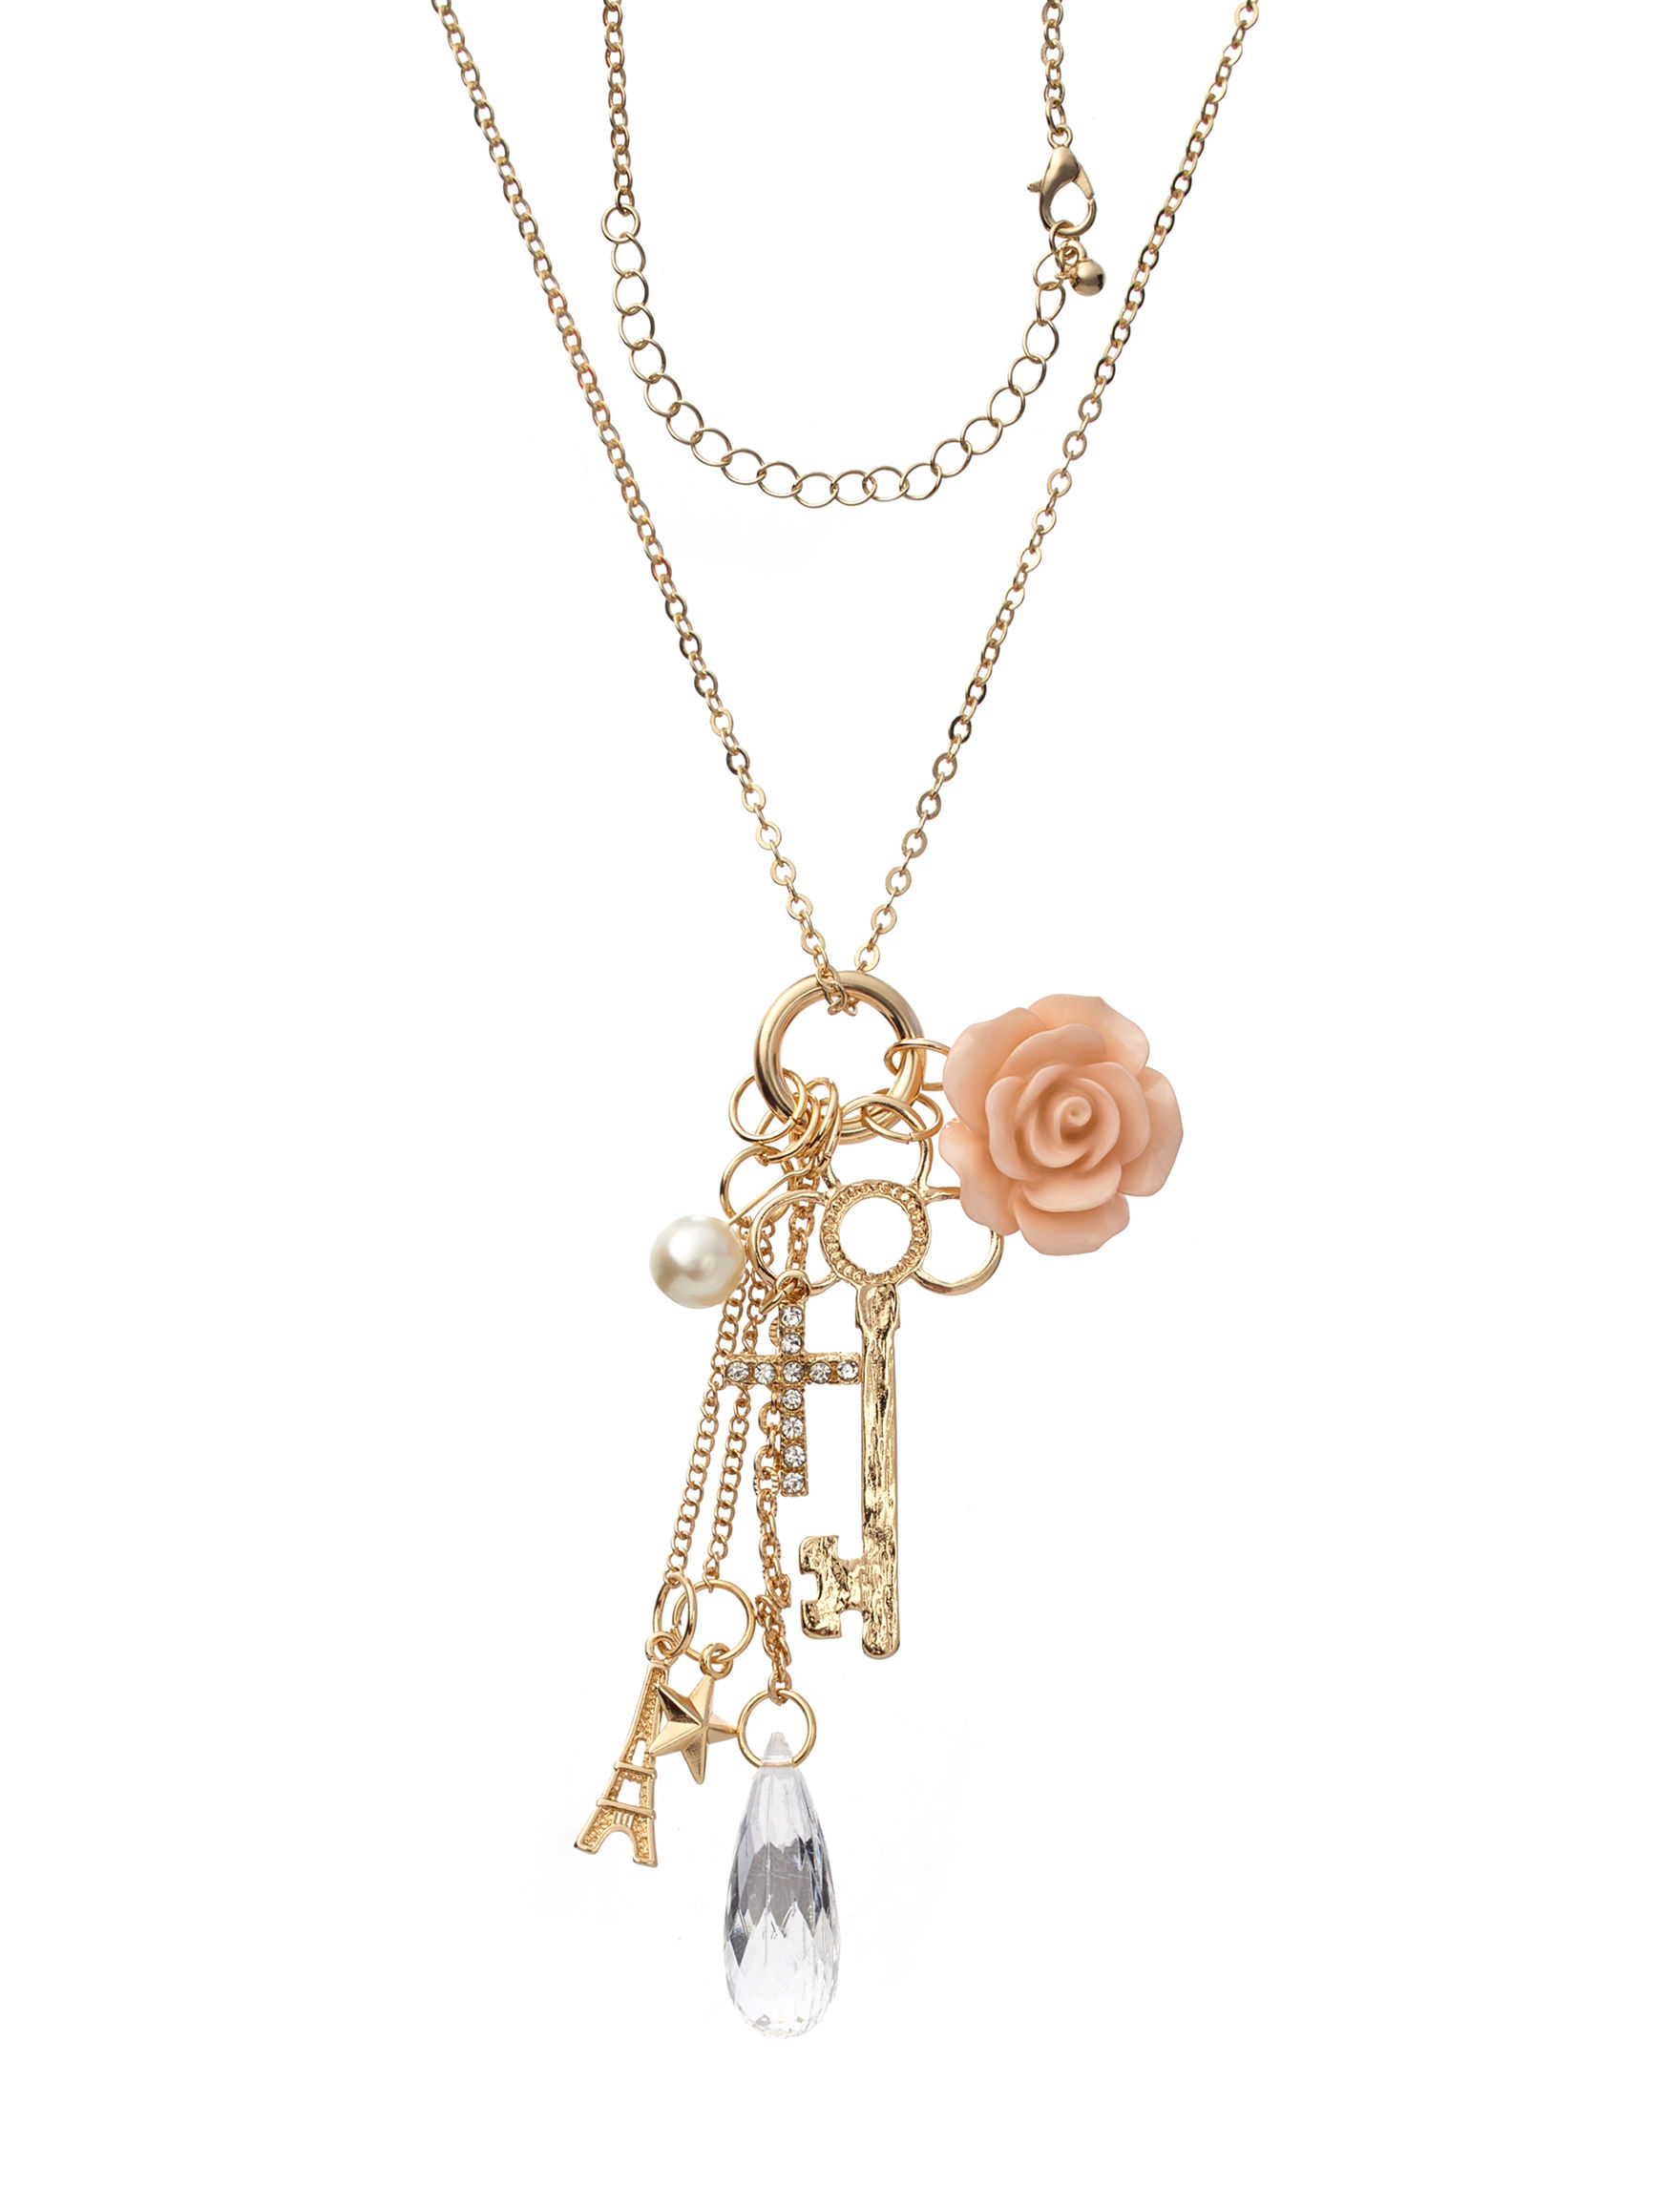 Hannah Pink Necklaces & Pendants Fashion Jewelry